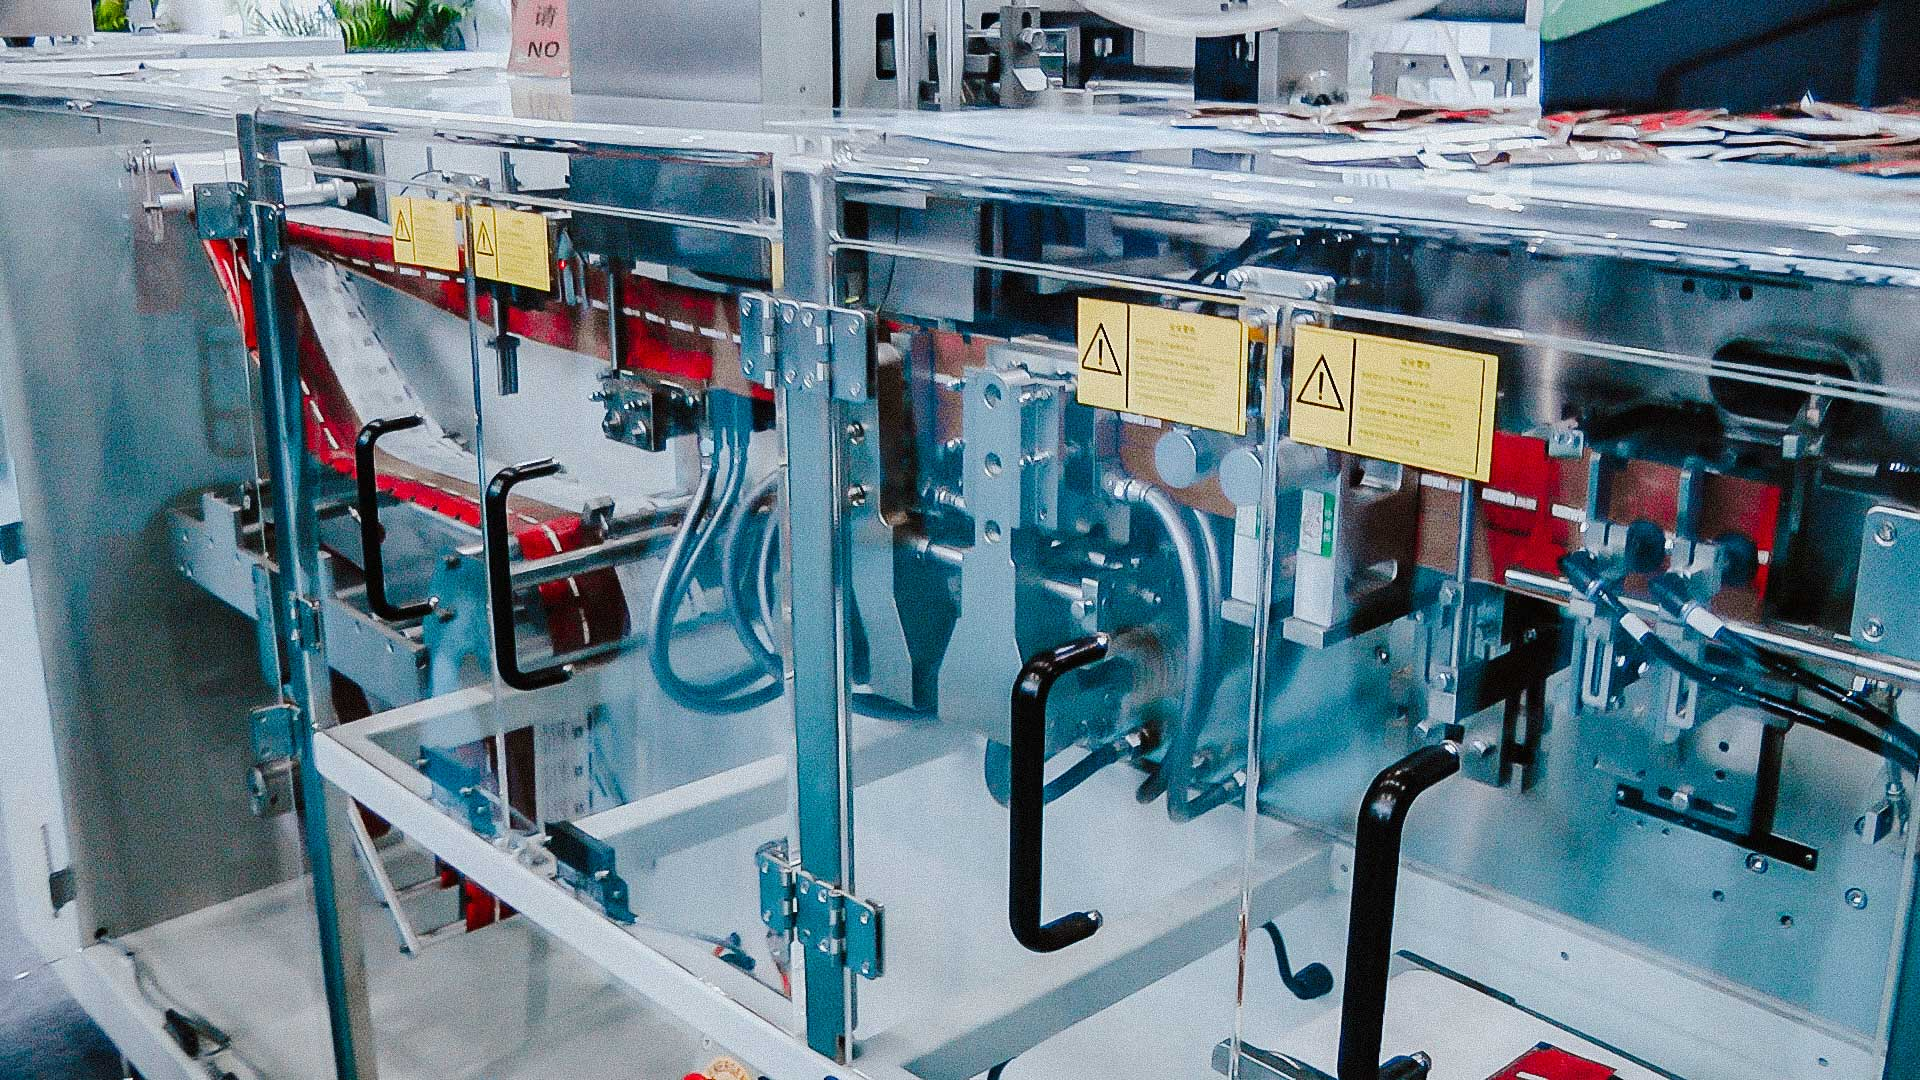 Automatic packing machine for packing powders in sachets bags for the production of medicines